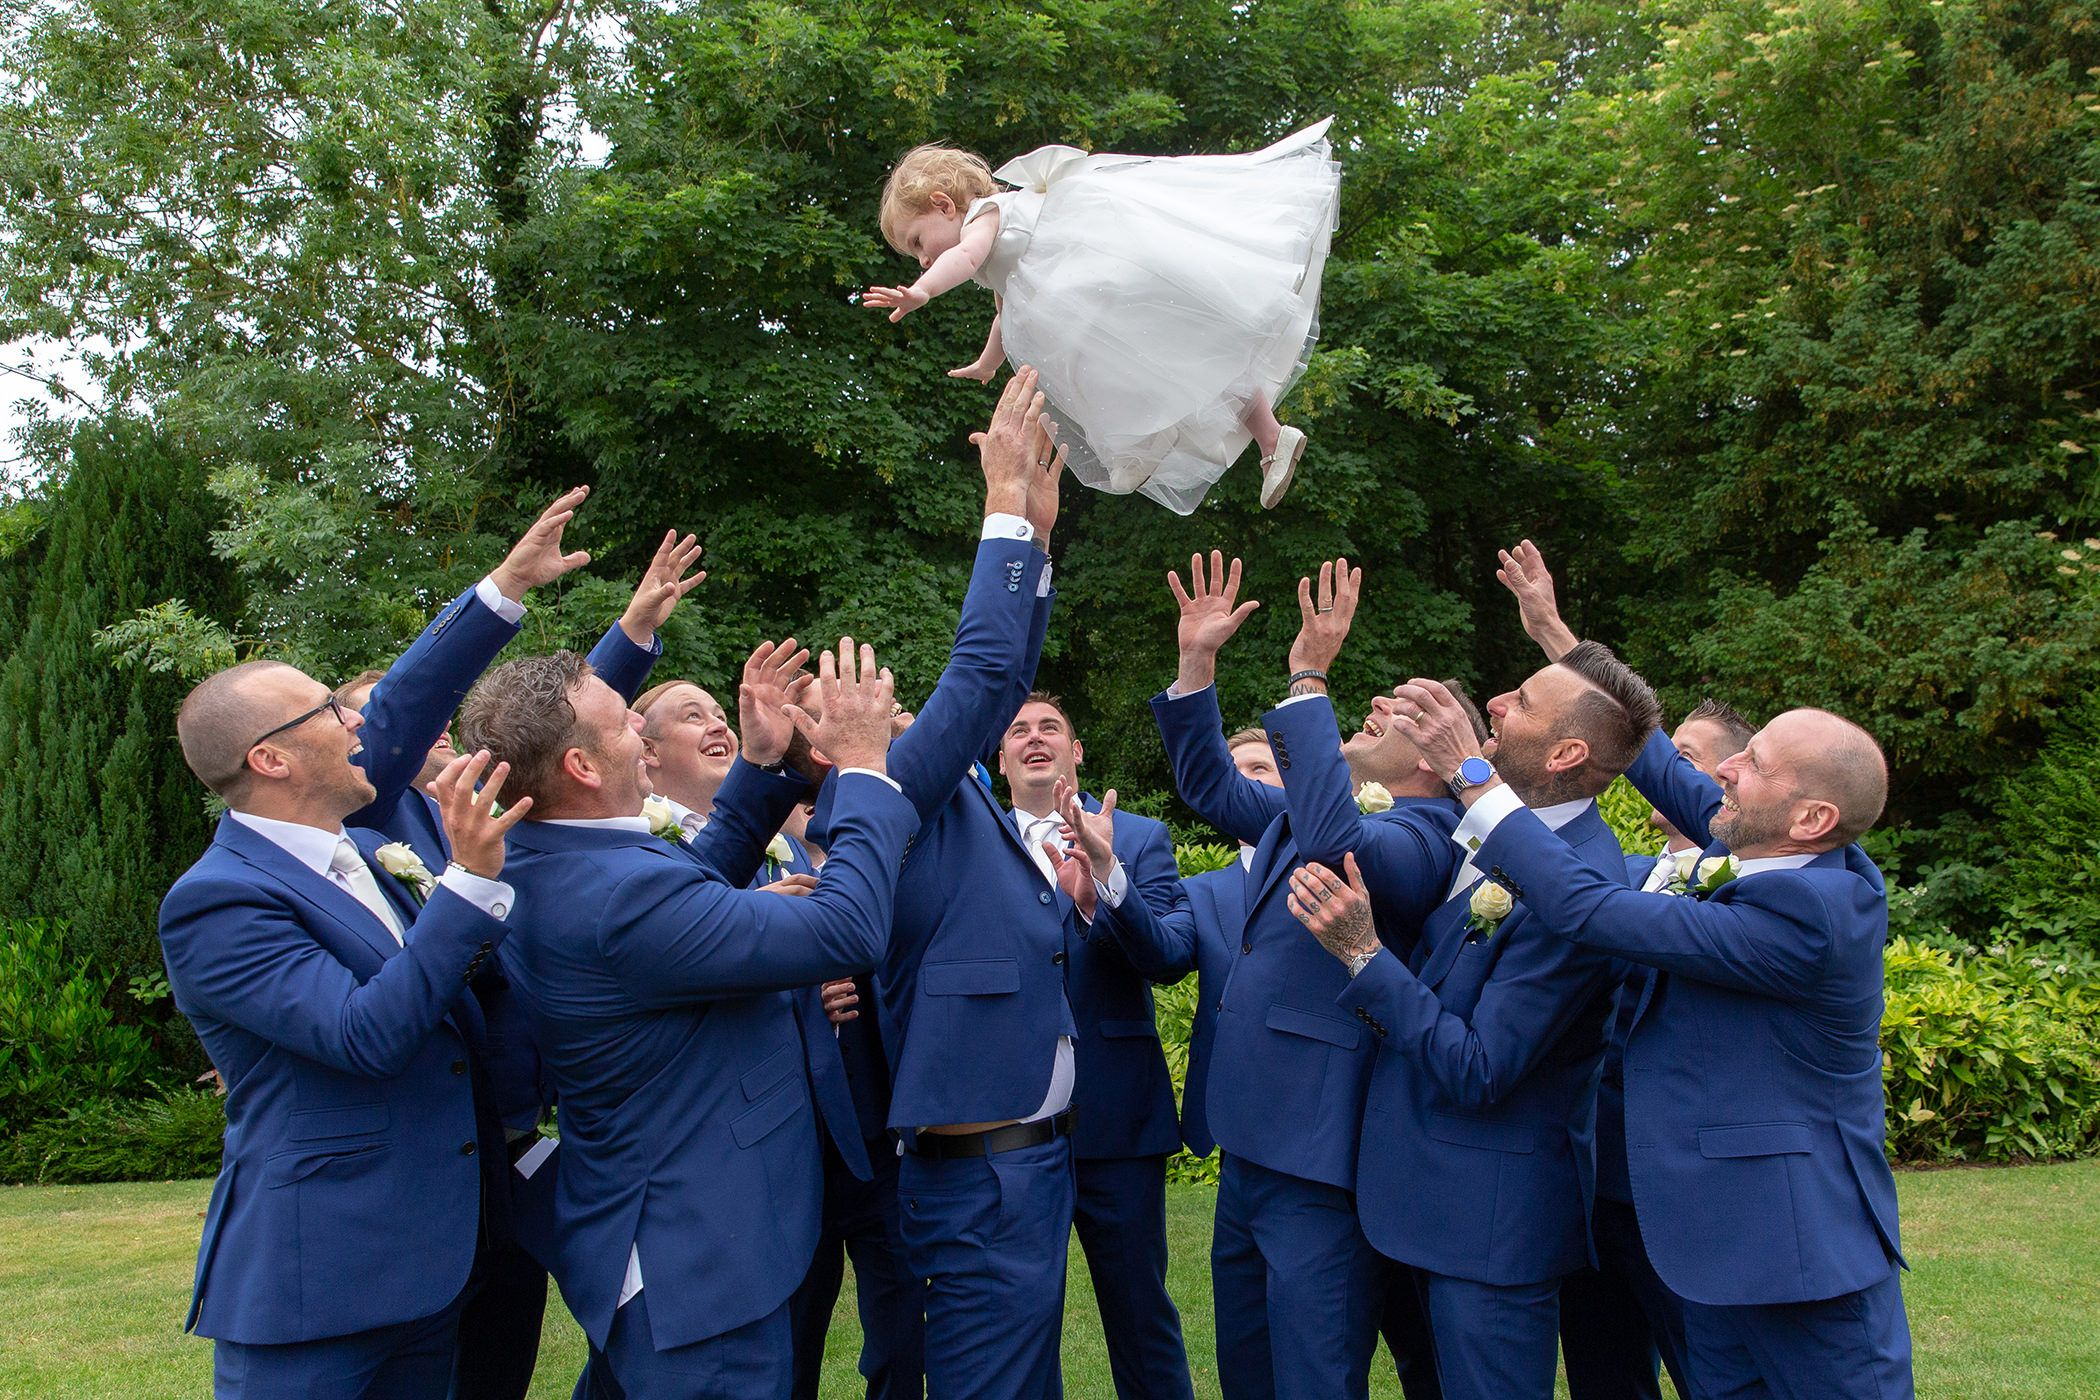 the flower girl gets thrown in the air